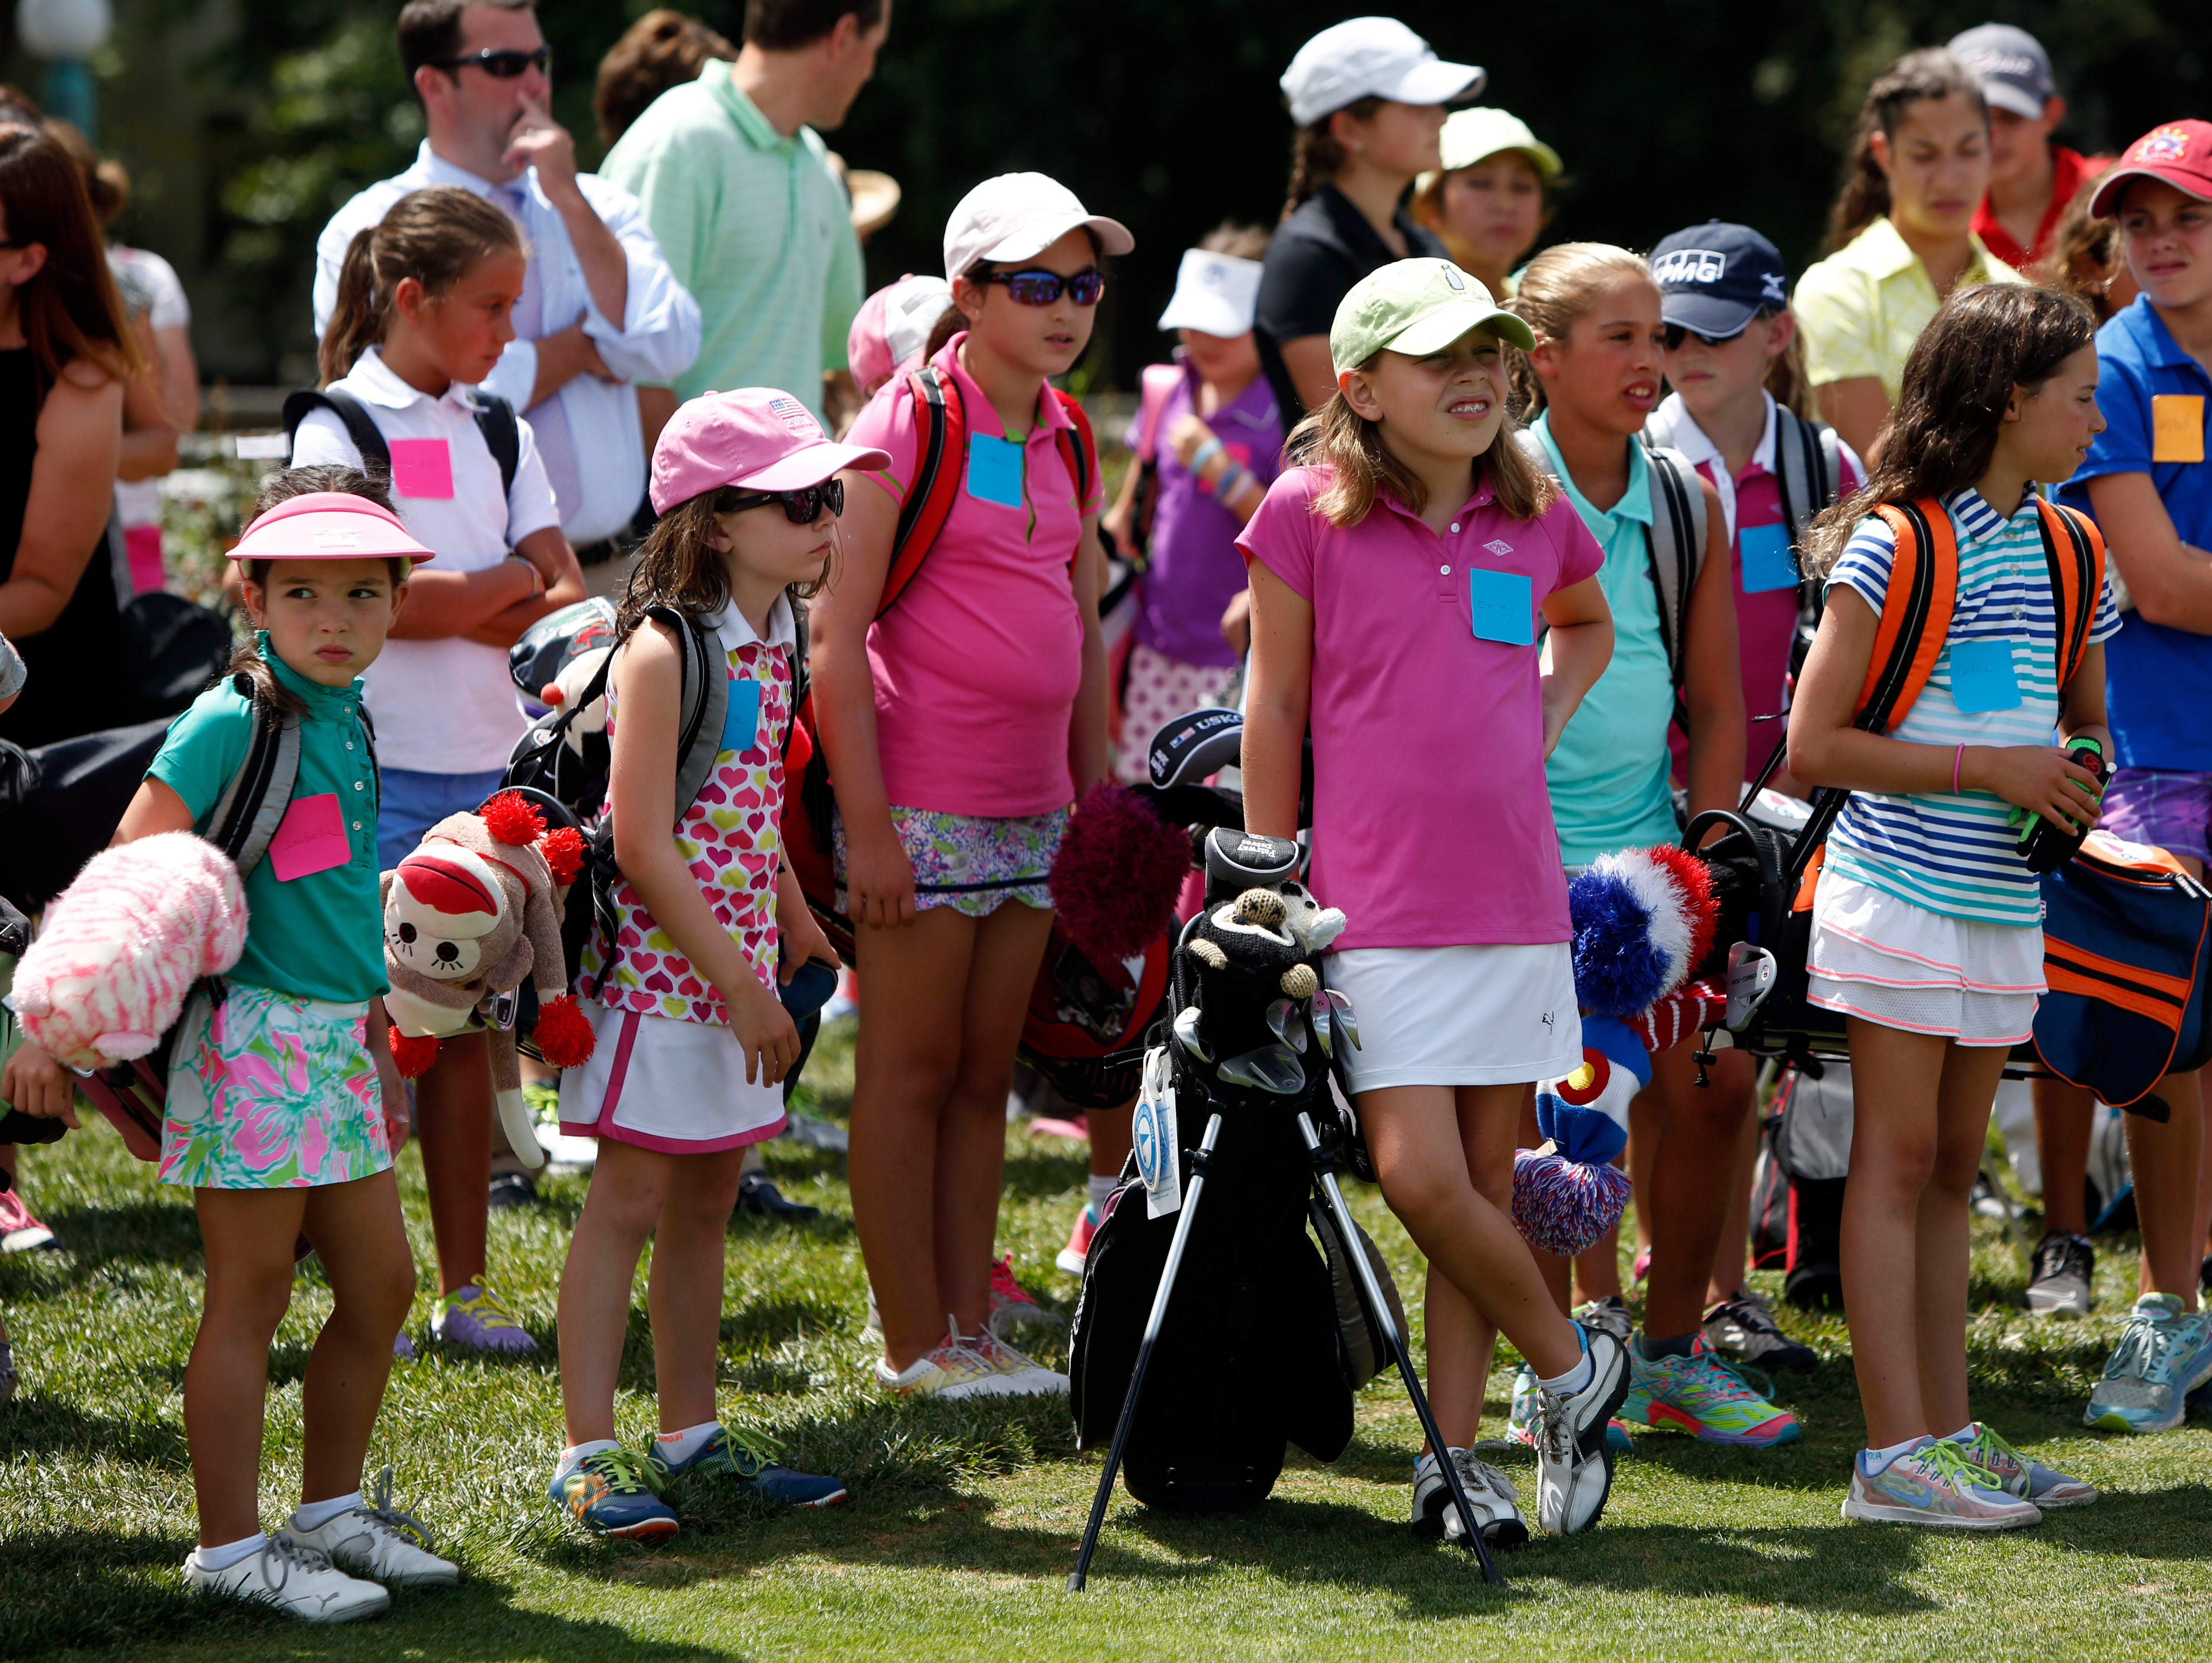 Girls attend the Women's Metropolitan Golf Association's annual Girls to the Tee event at Westchester Country Club in Rye, Aug. 8, 2016. The free clinic, for girls ages 6-18, is an afternoon of instruction and networking to help show girls who are learning the game that they are part of a larger group.